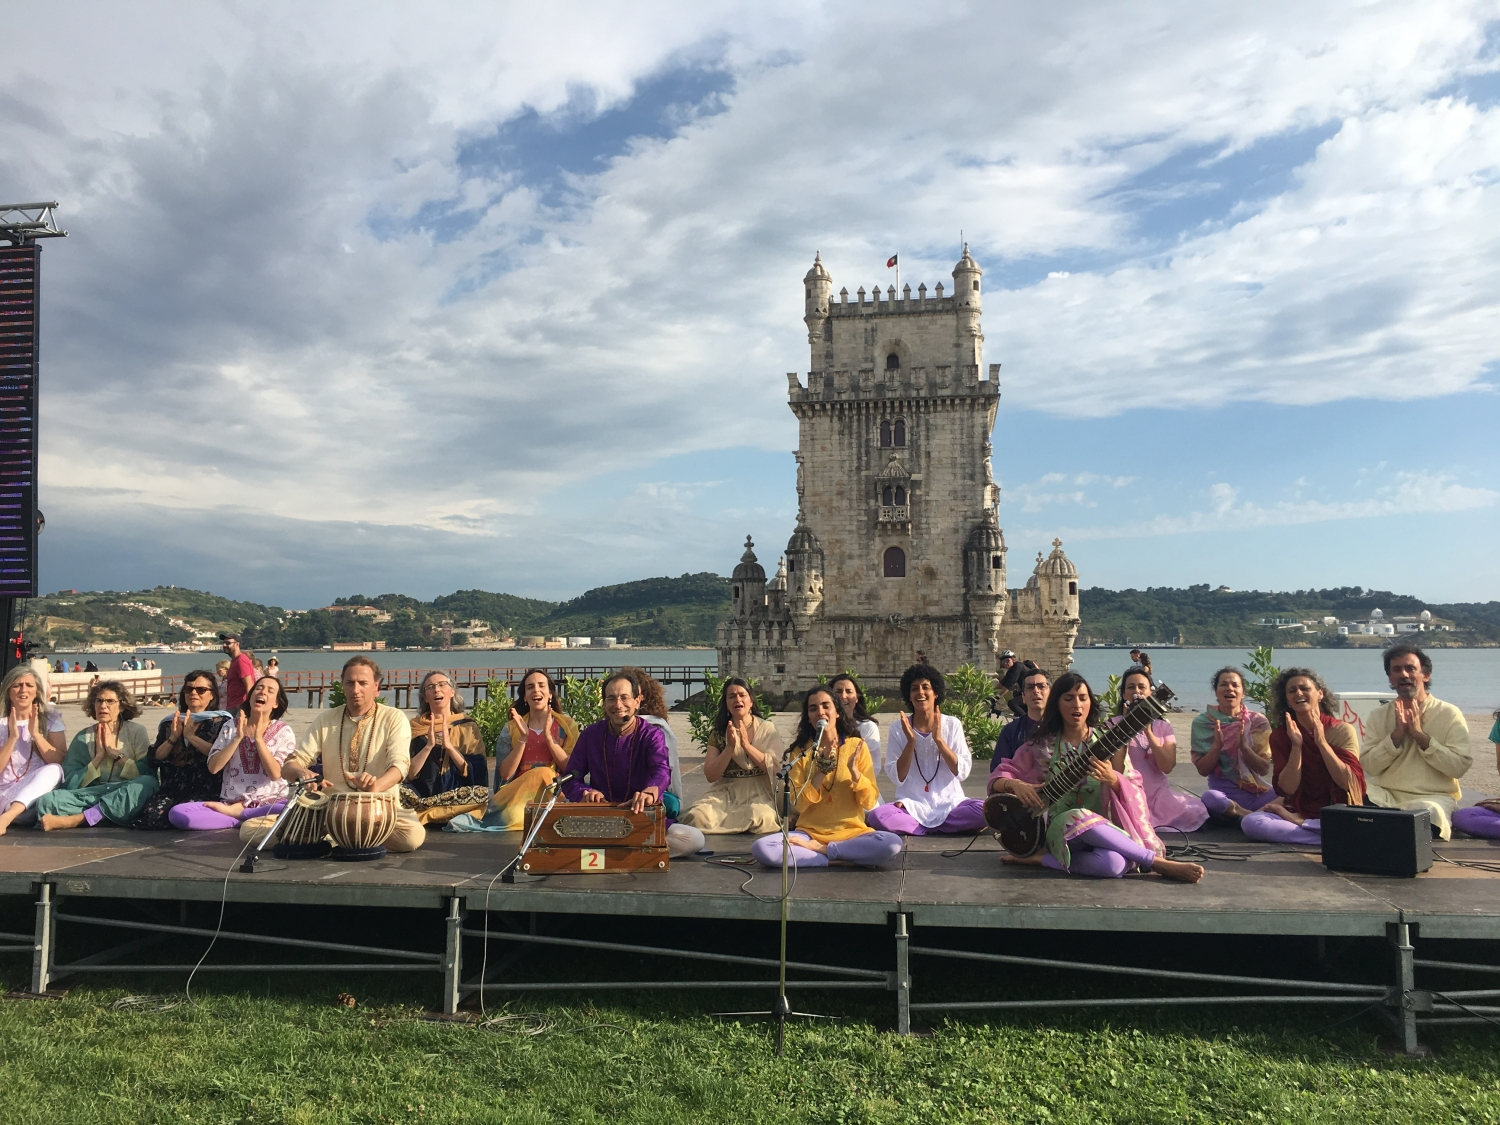 Celebração do International Day of Yoga - IDY / Dia Internacional do Yoga - 2018, Junho, 21 - Belém, Portugal